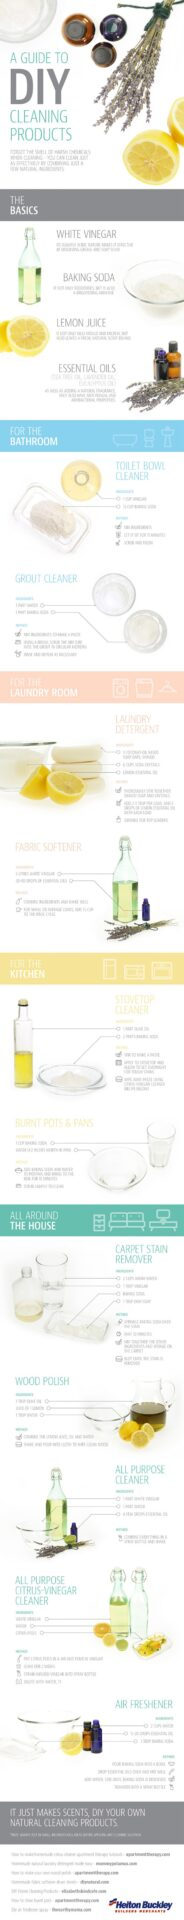 diy-cleaning-products-info-graphic